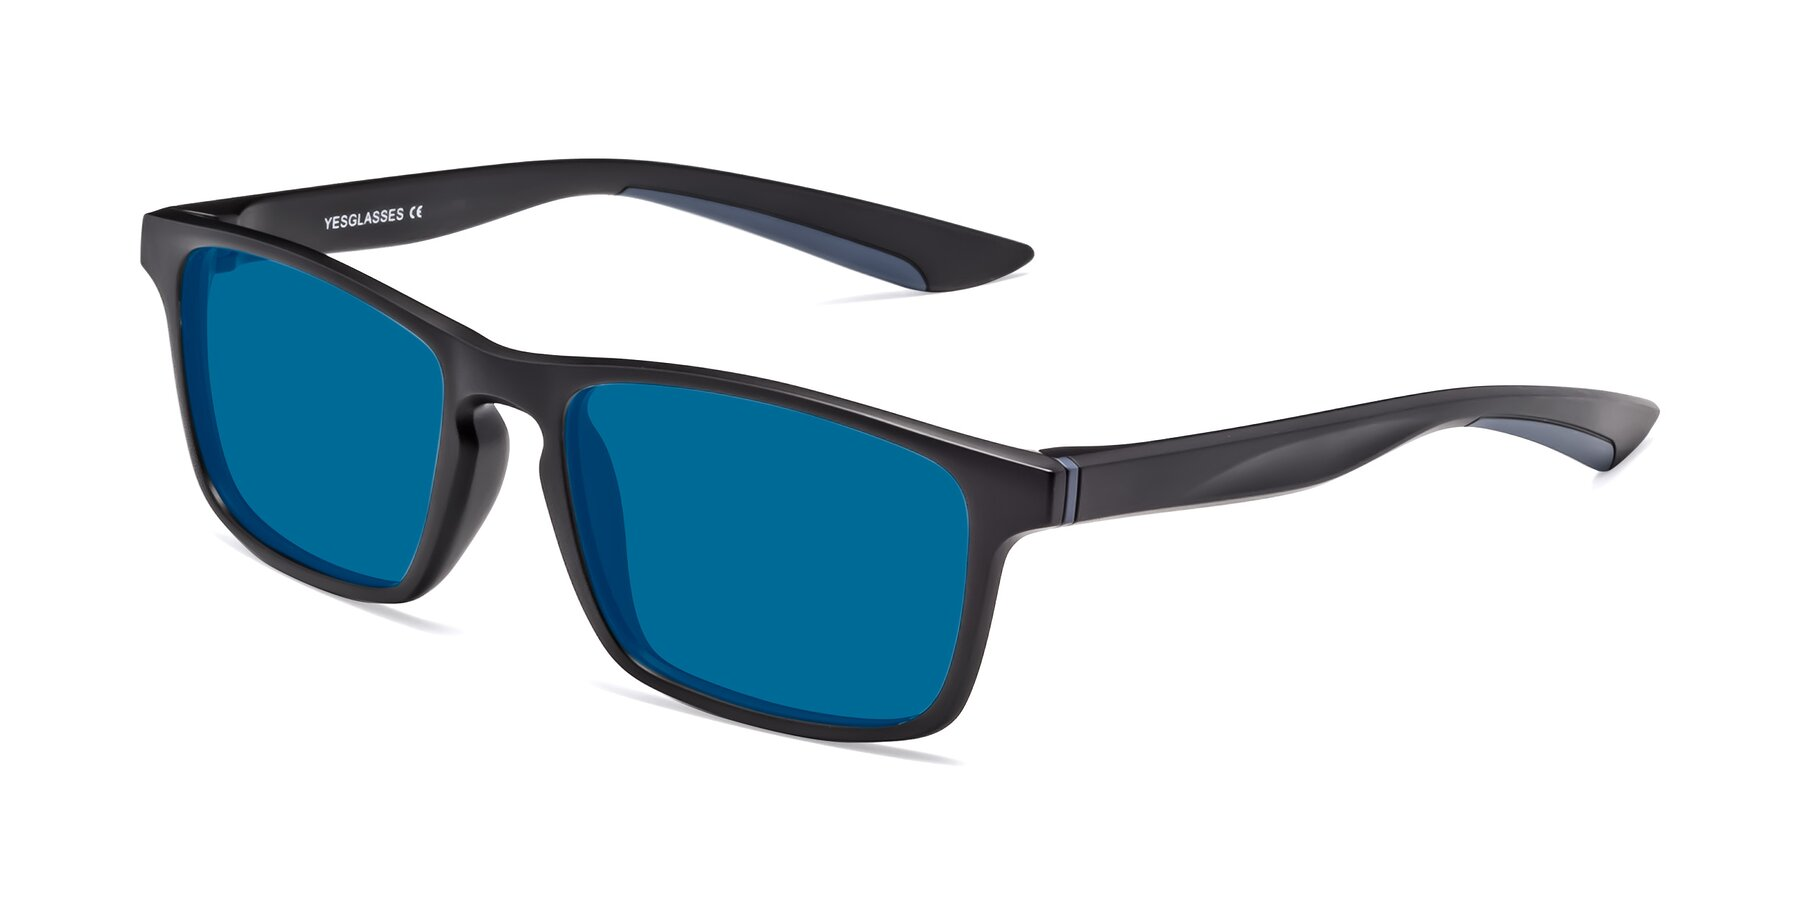 Angle of Passion in Matte Black-Blue with Blue Tinted Lenses